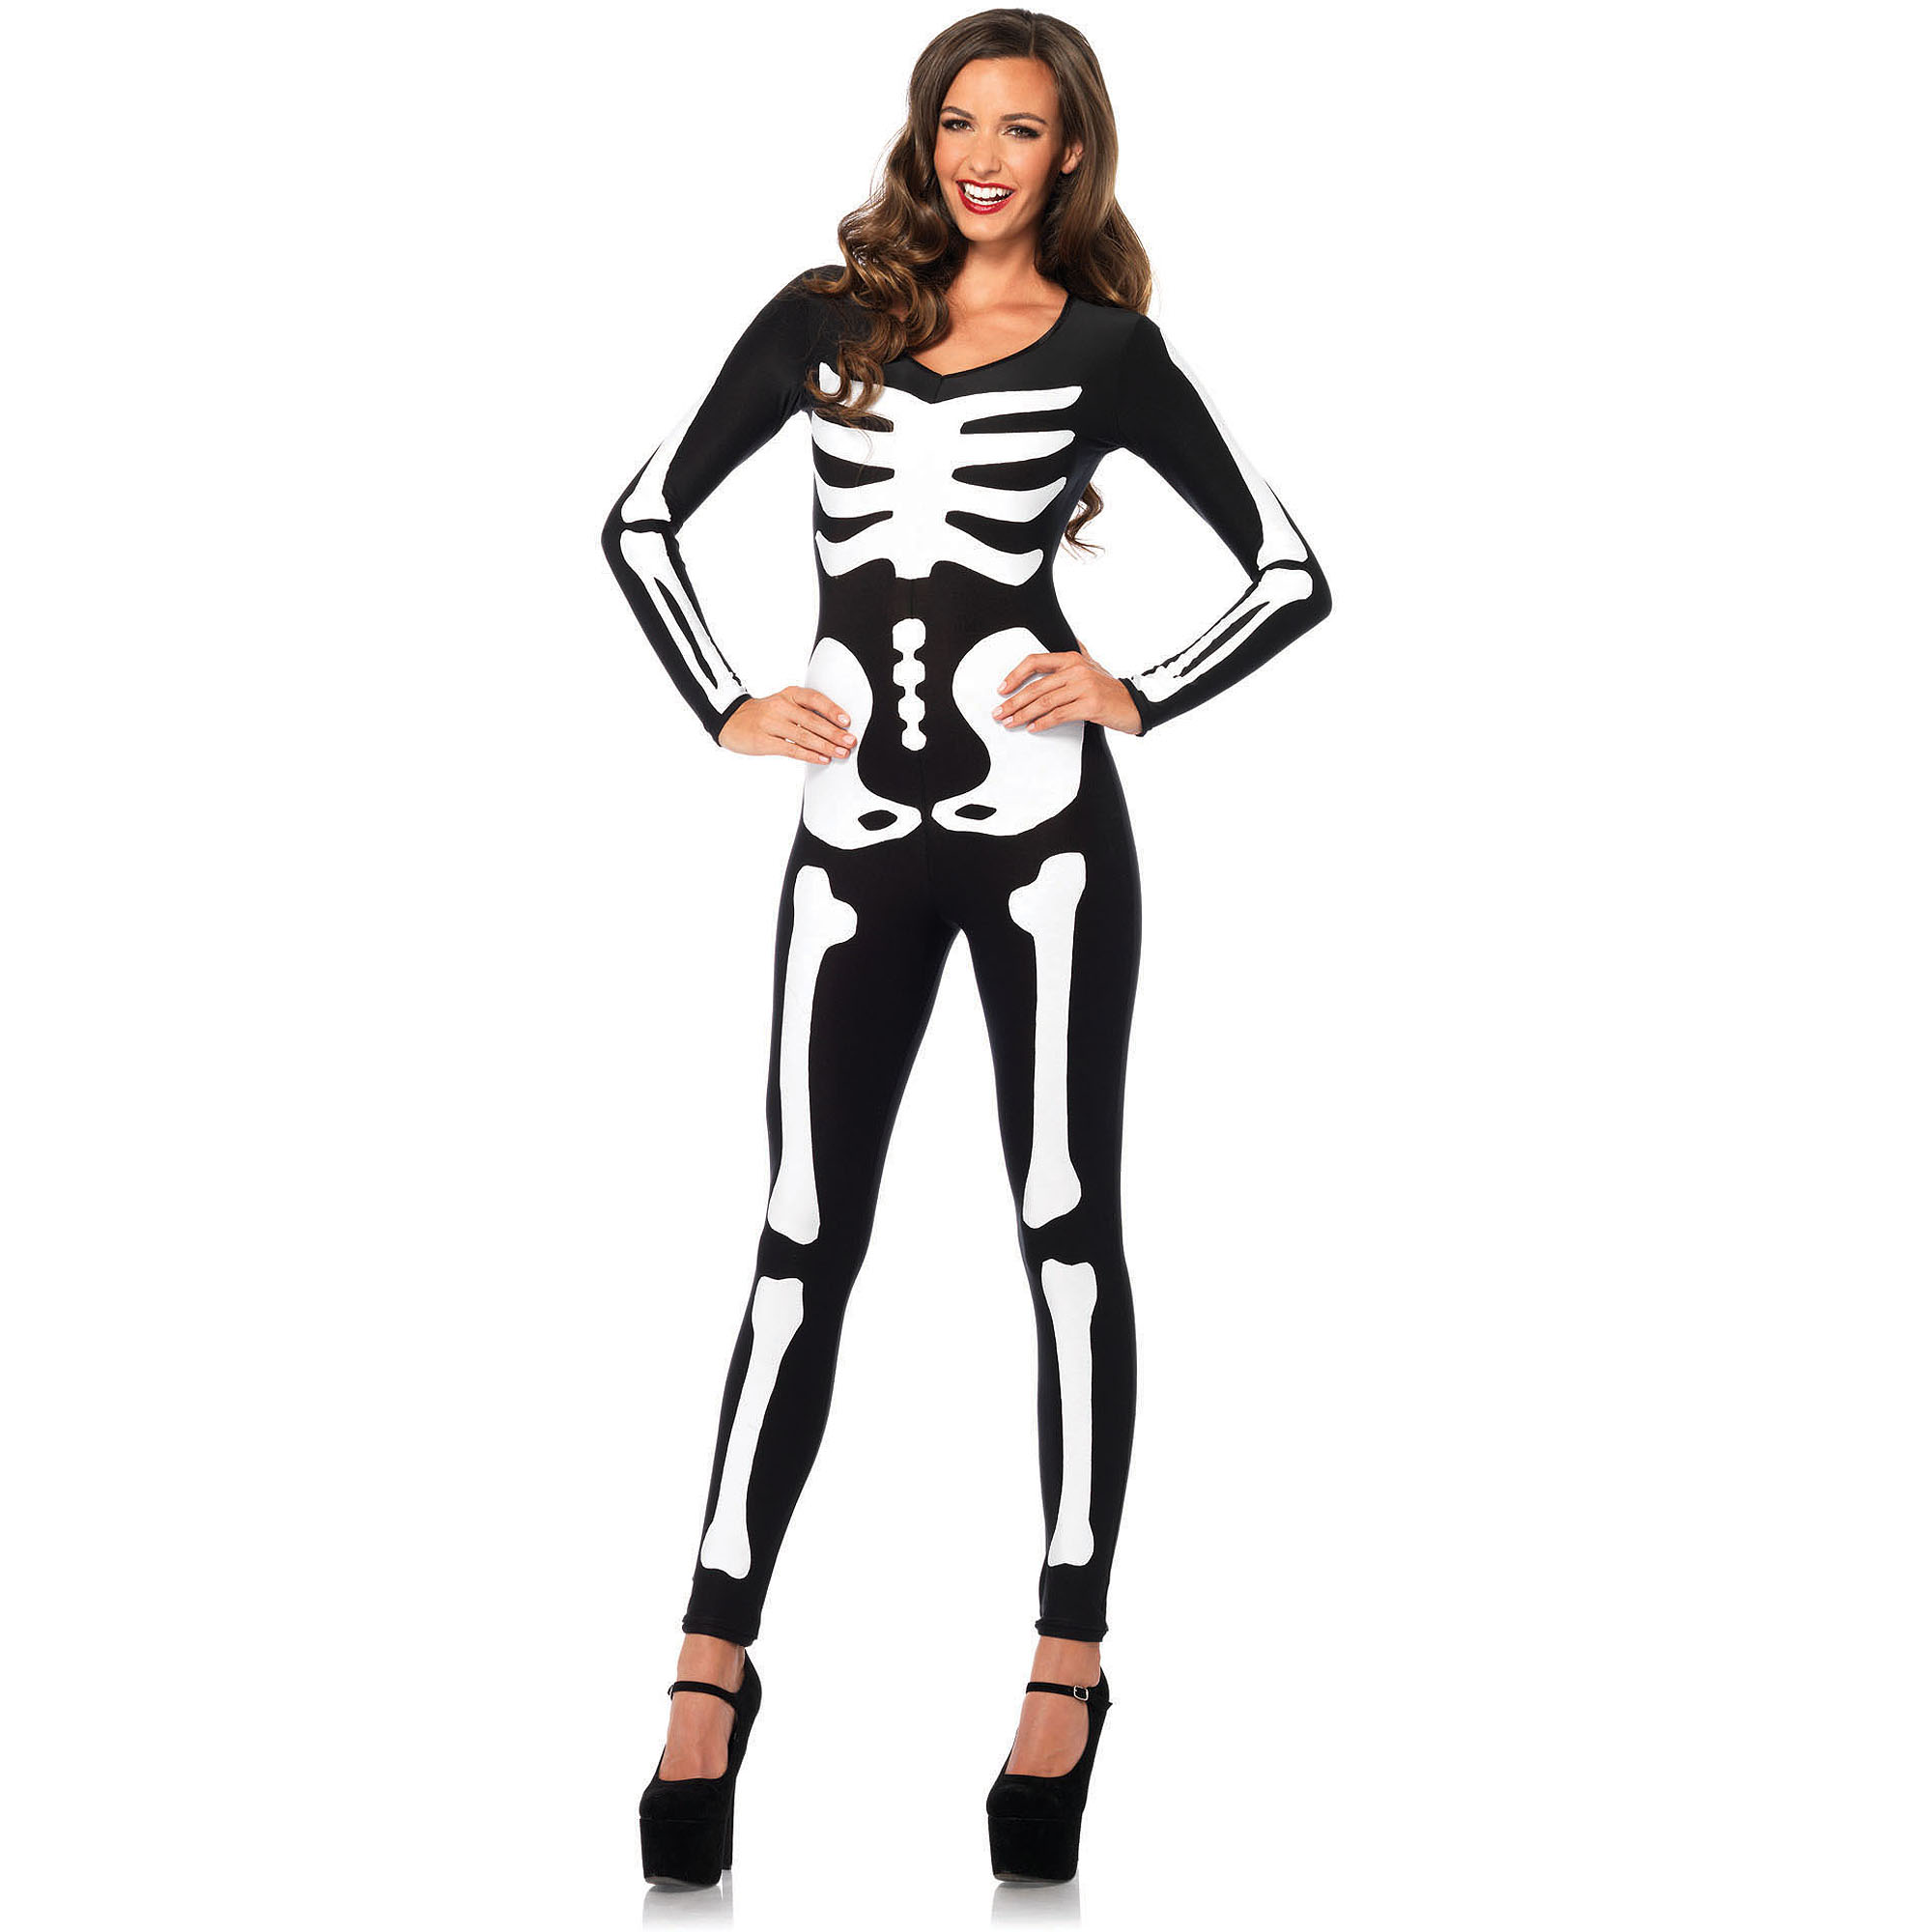 Glow In The Dark Skeleton Catsuit Adult Halloween Costume